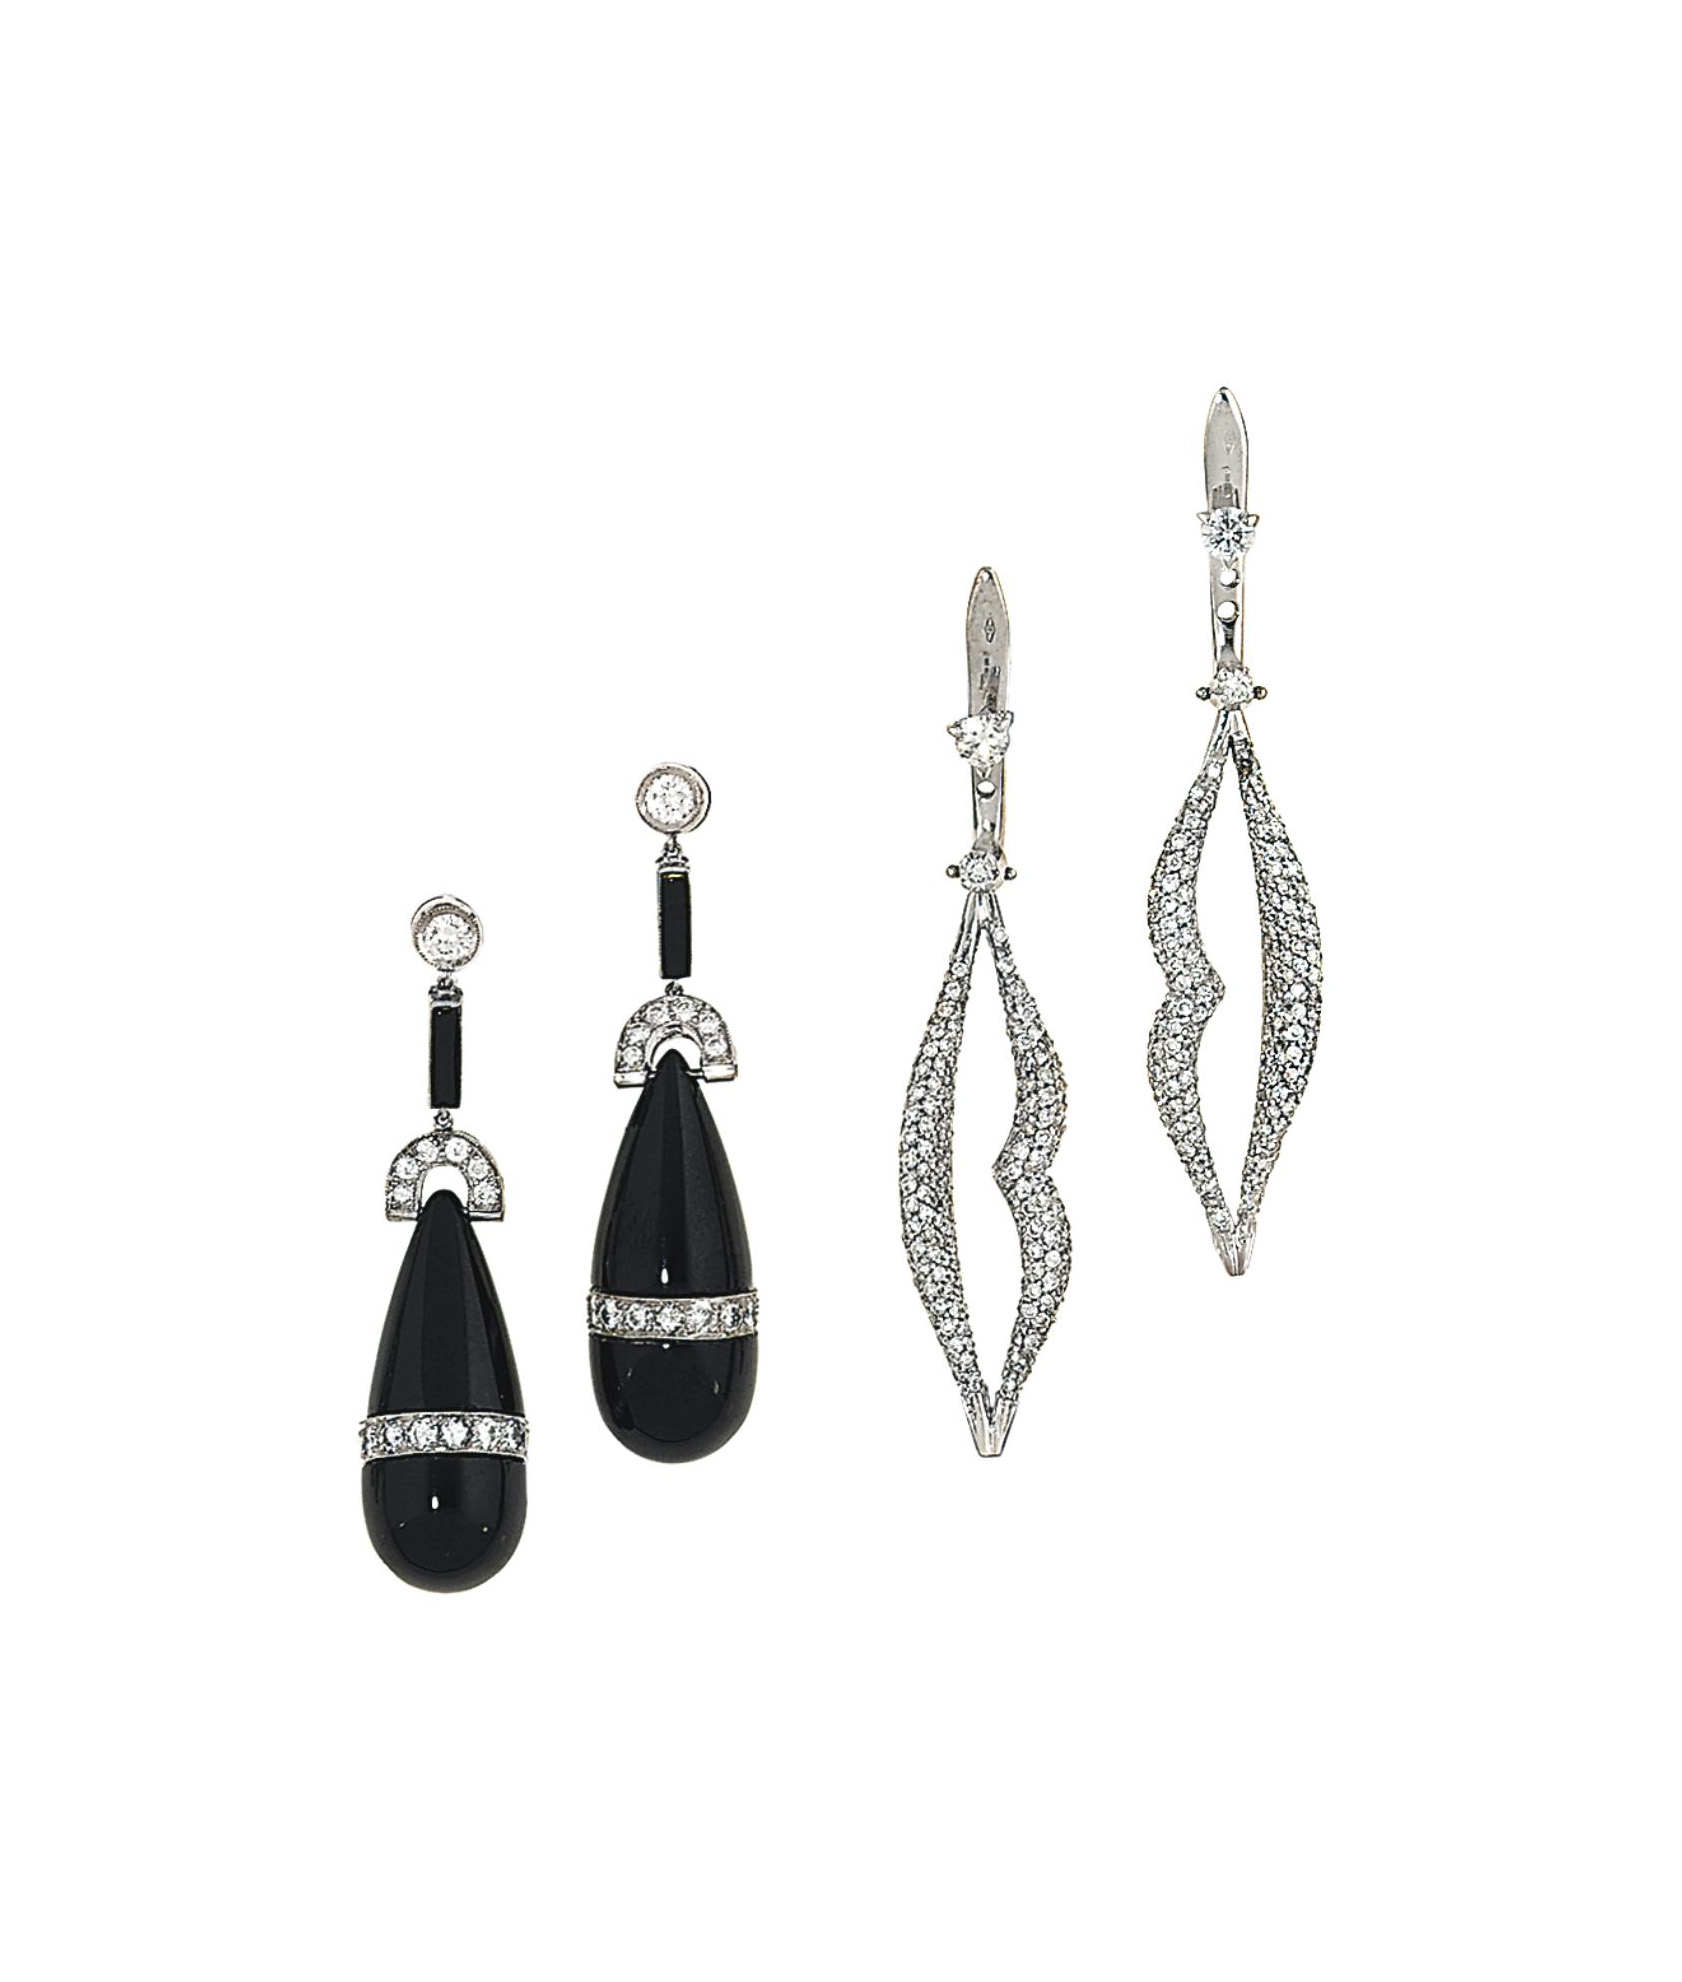 Two pairs of earrings, one by Enigma